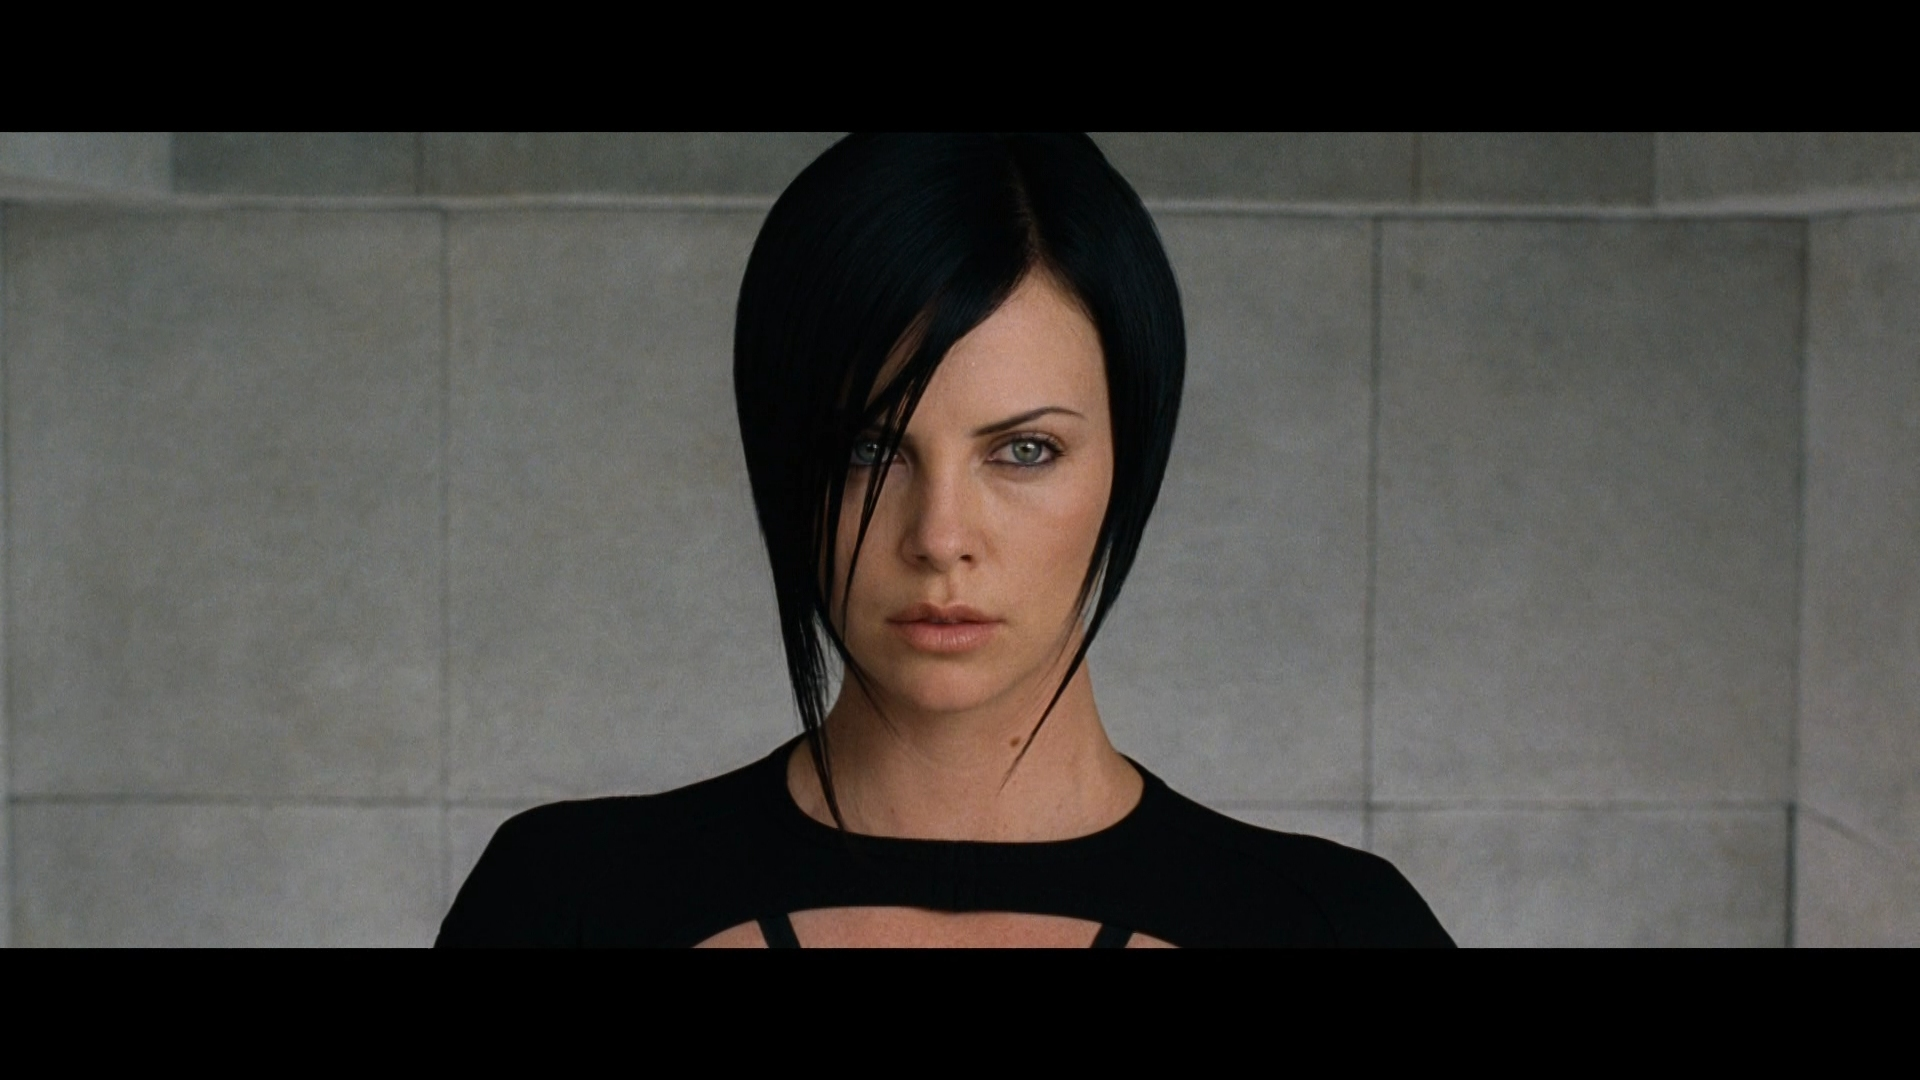 High Resolution Wallpaper | Aeon Flux 1920x1080 px